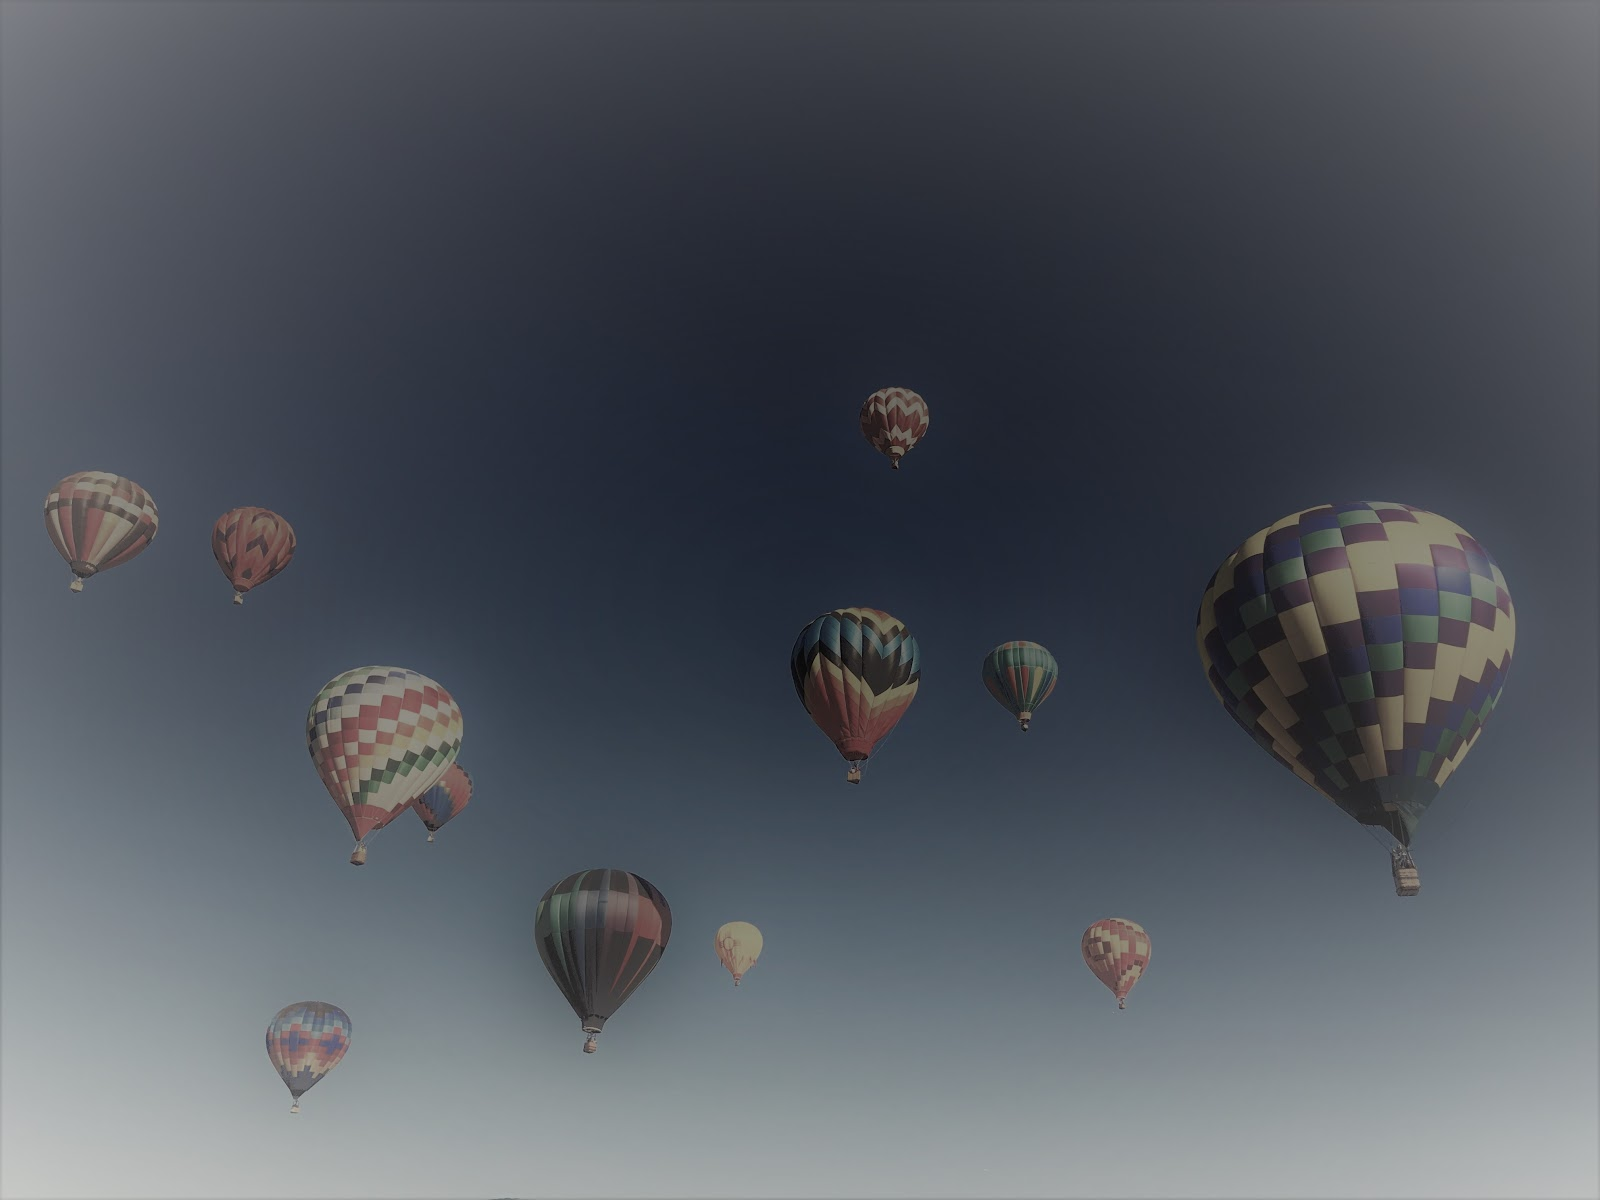 Hot air balloons - with cataracts